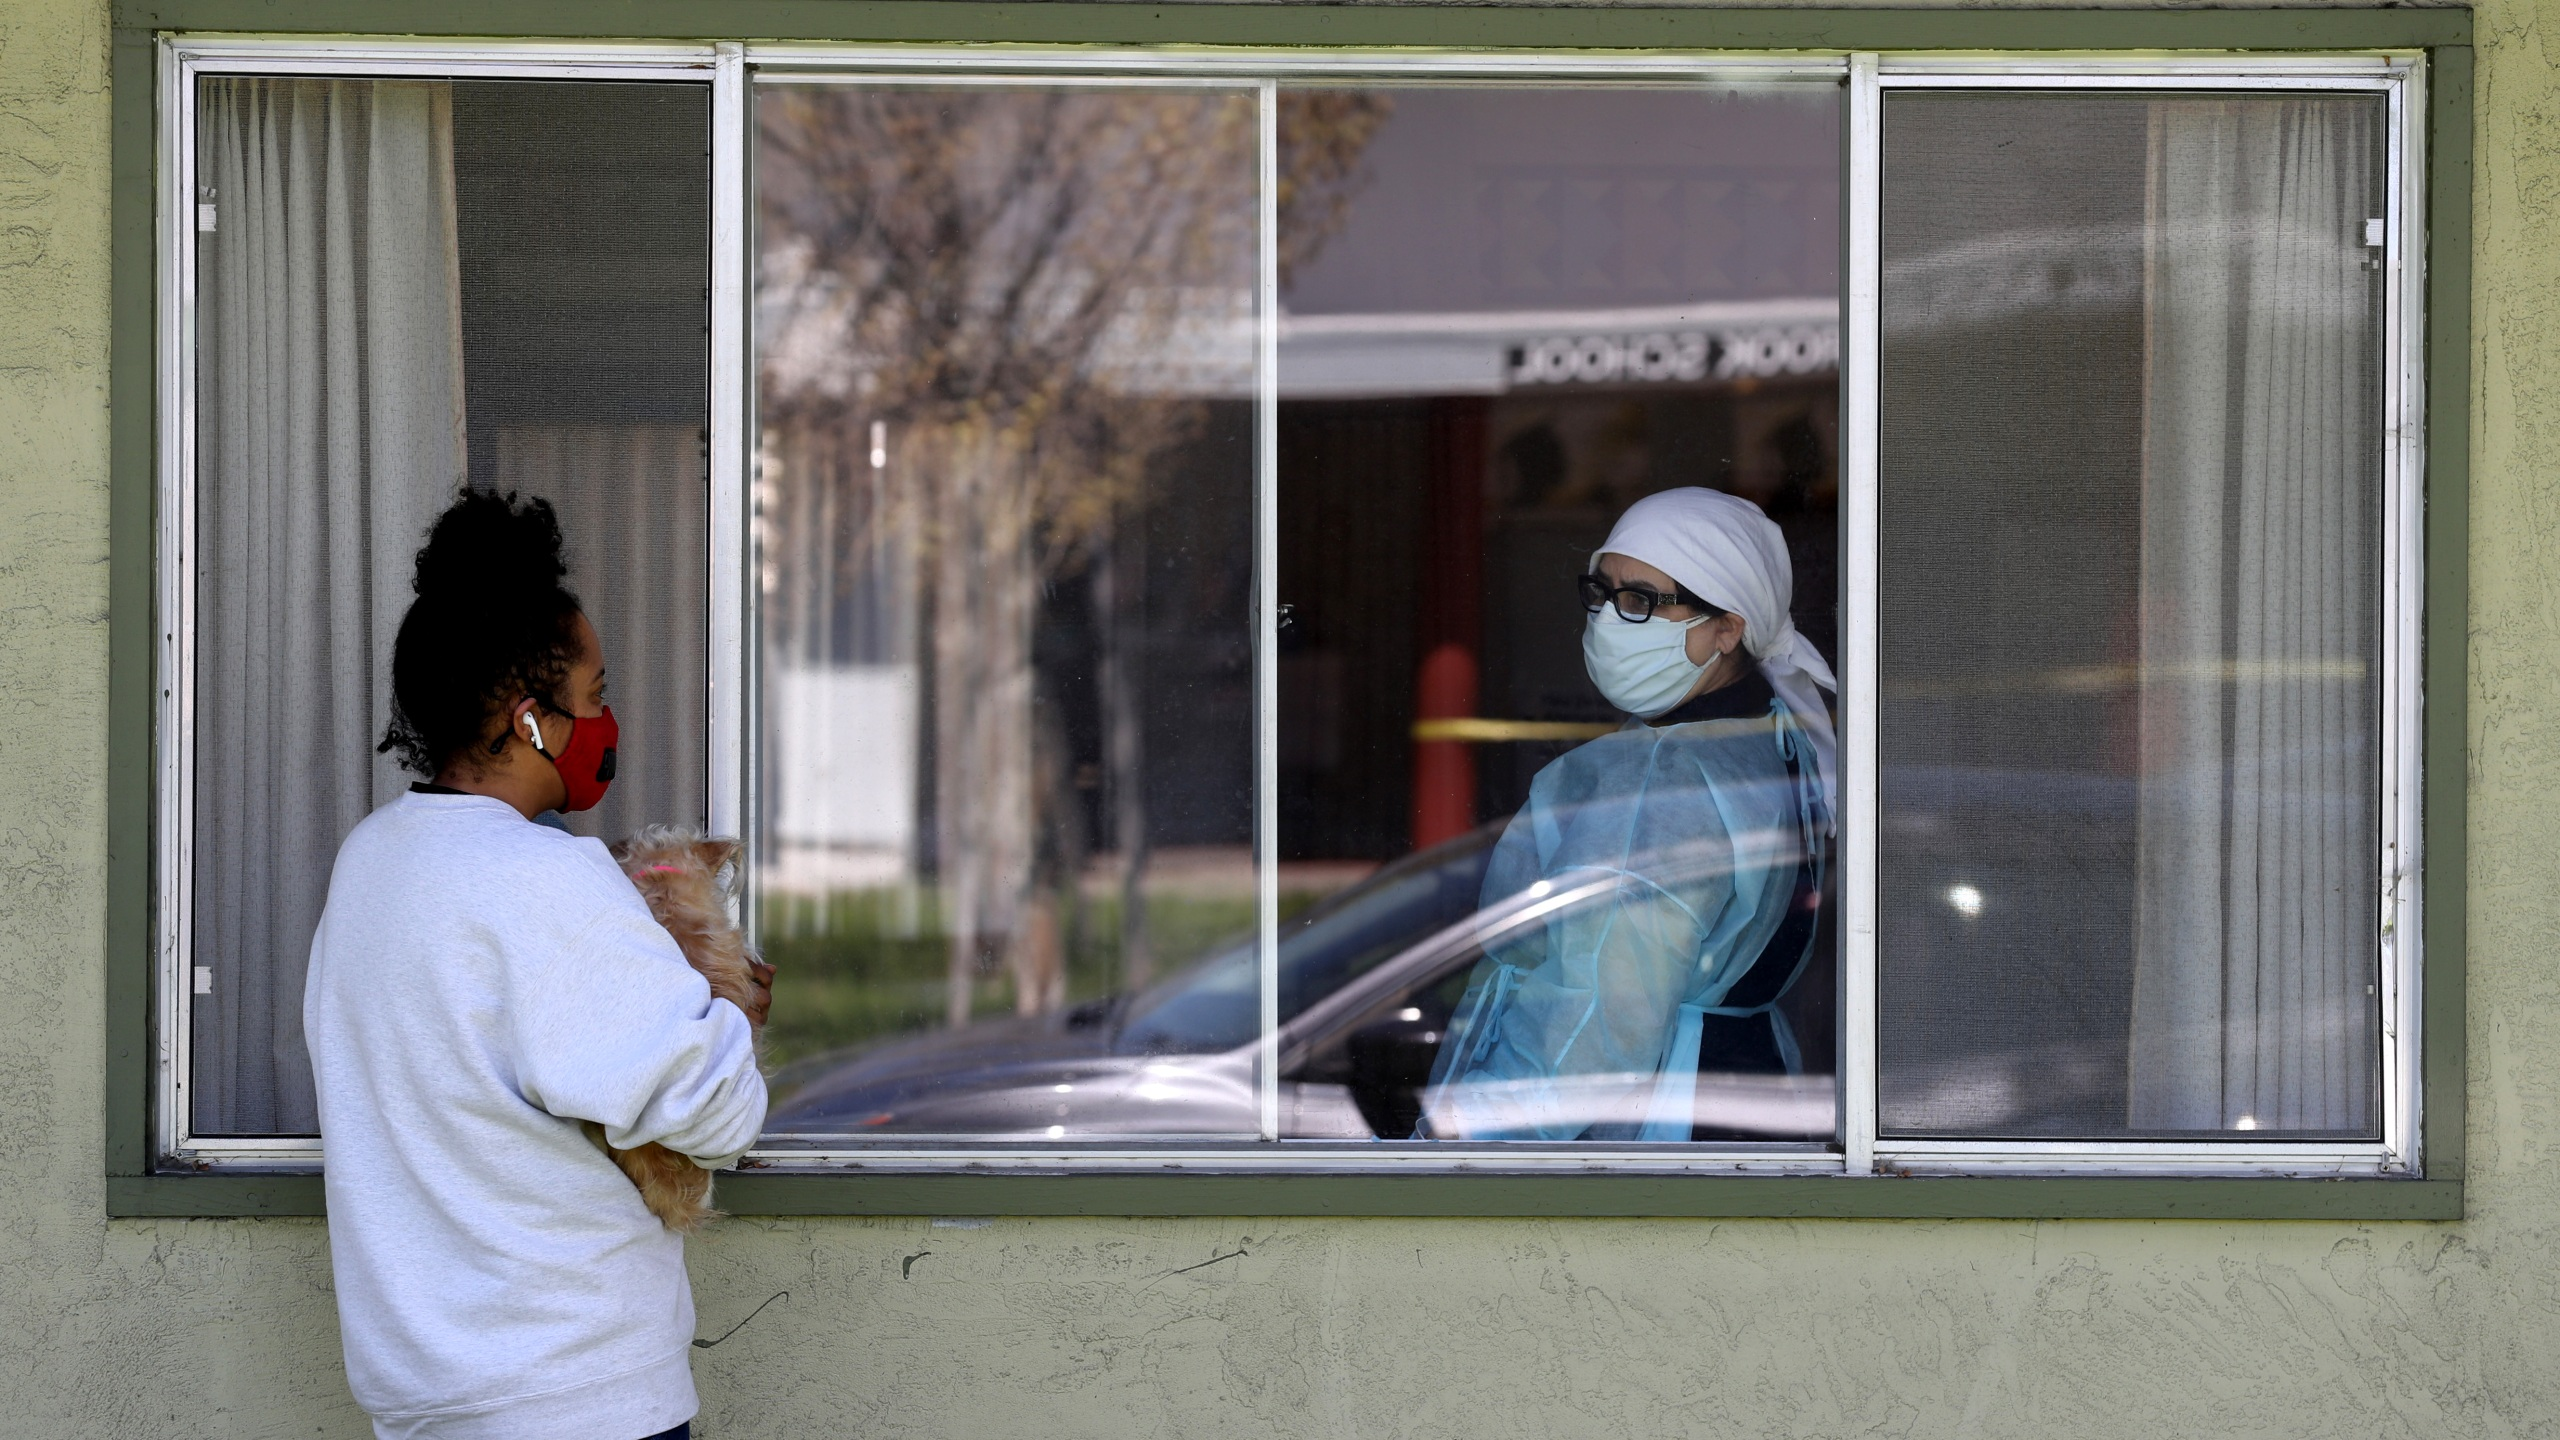 Adrina Rodriguez (L) talks with a nurse through a window as she visits her father who is a patient at the Gateway Care and Rehabilitation Center that has tested negative for COVID-19 on April 14, 2020, in Hayward, California. (Justin Sullivan/Getty Images)